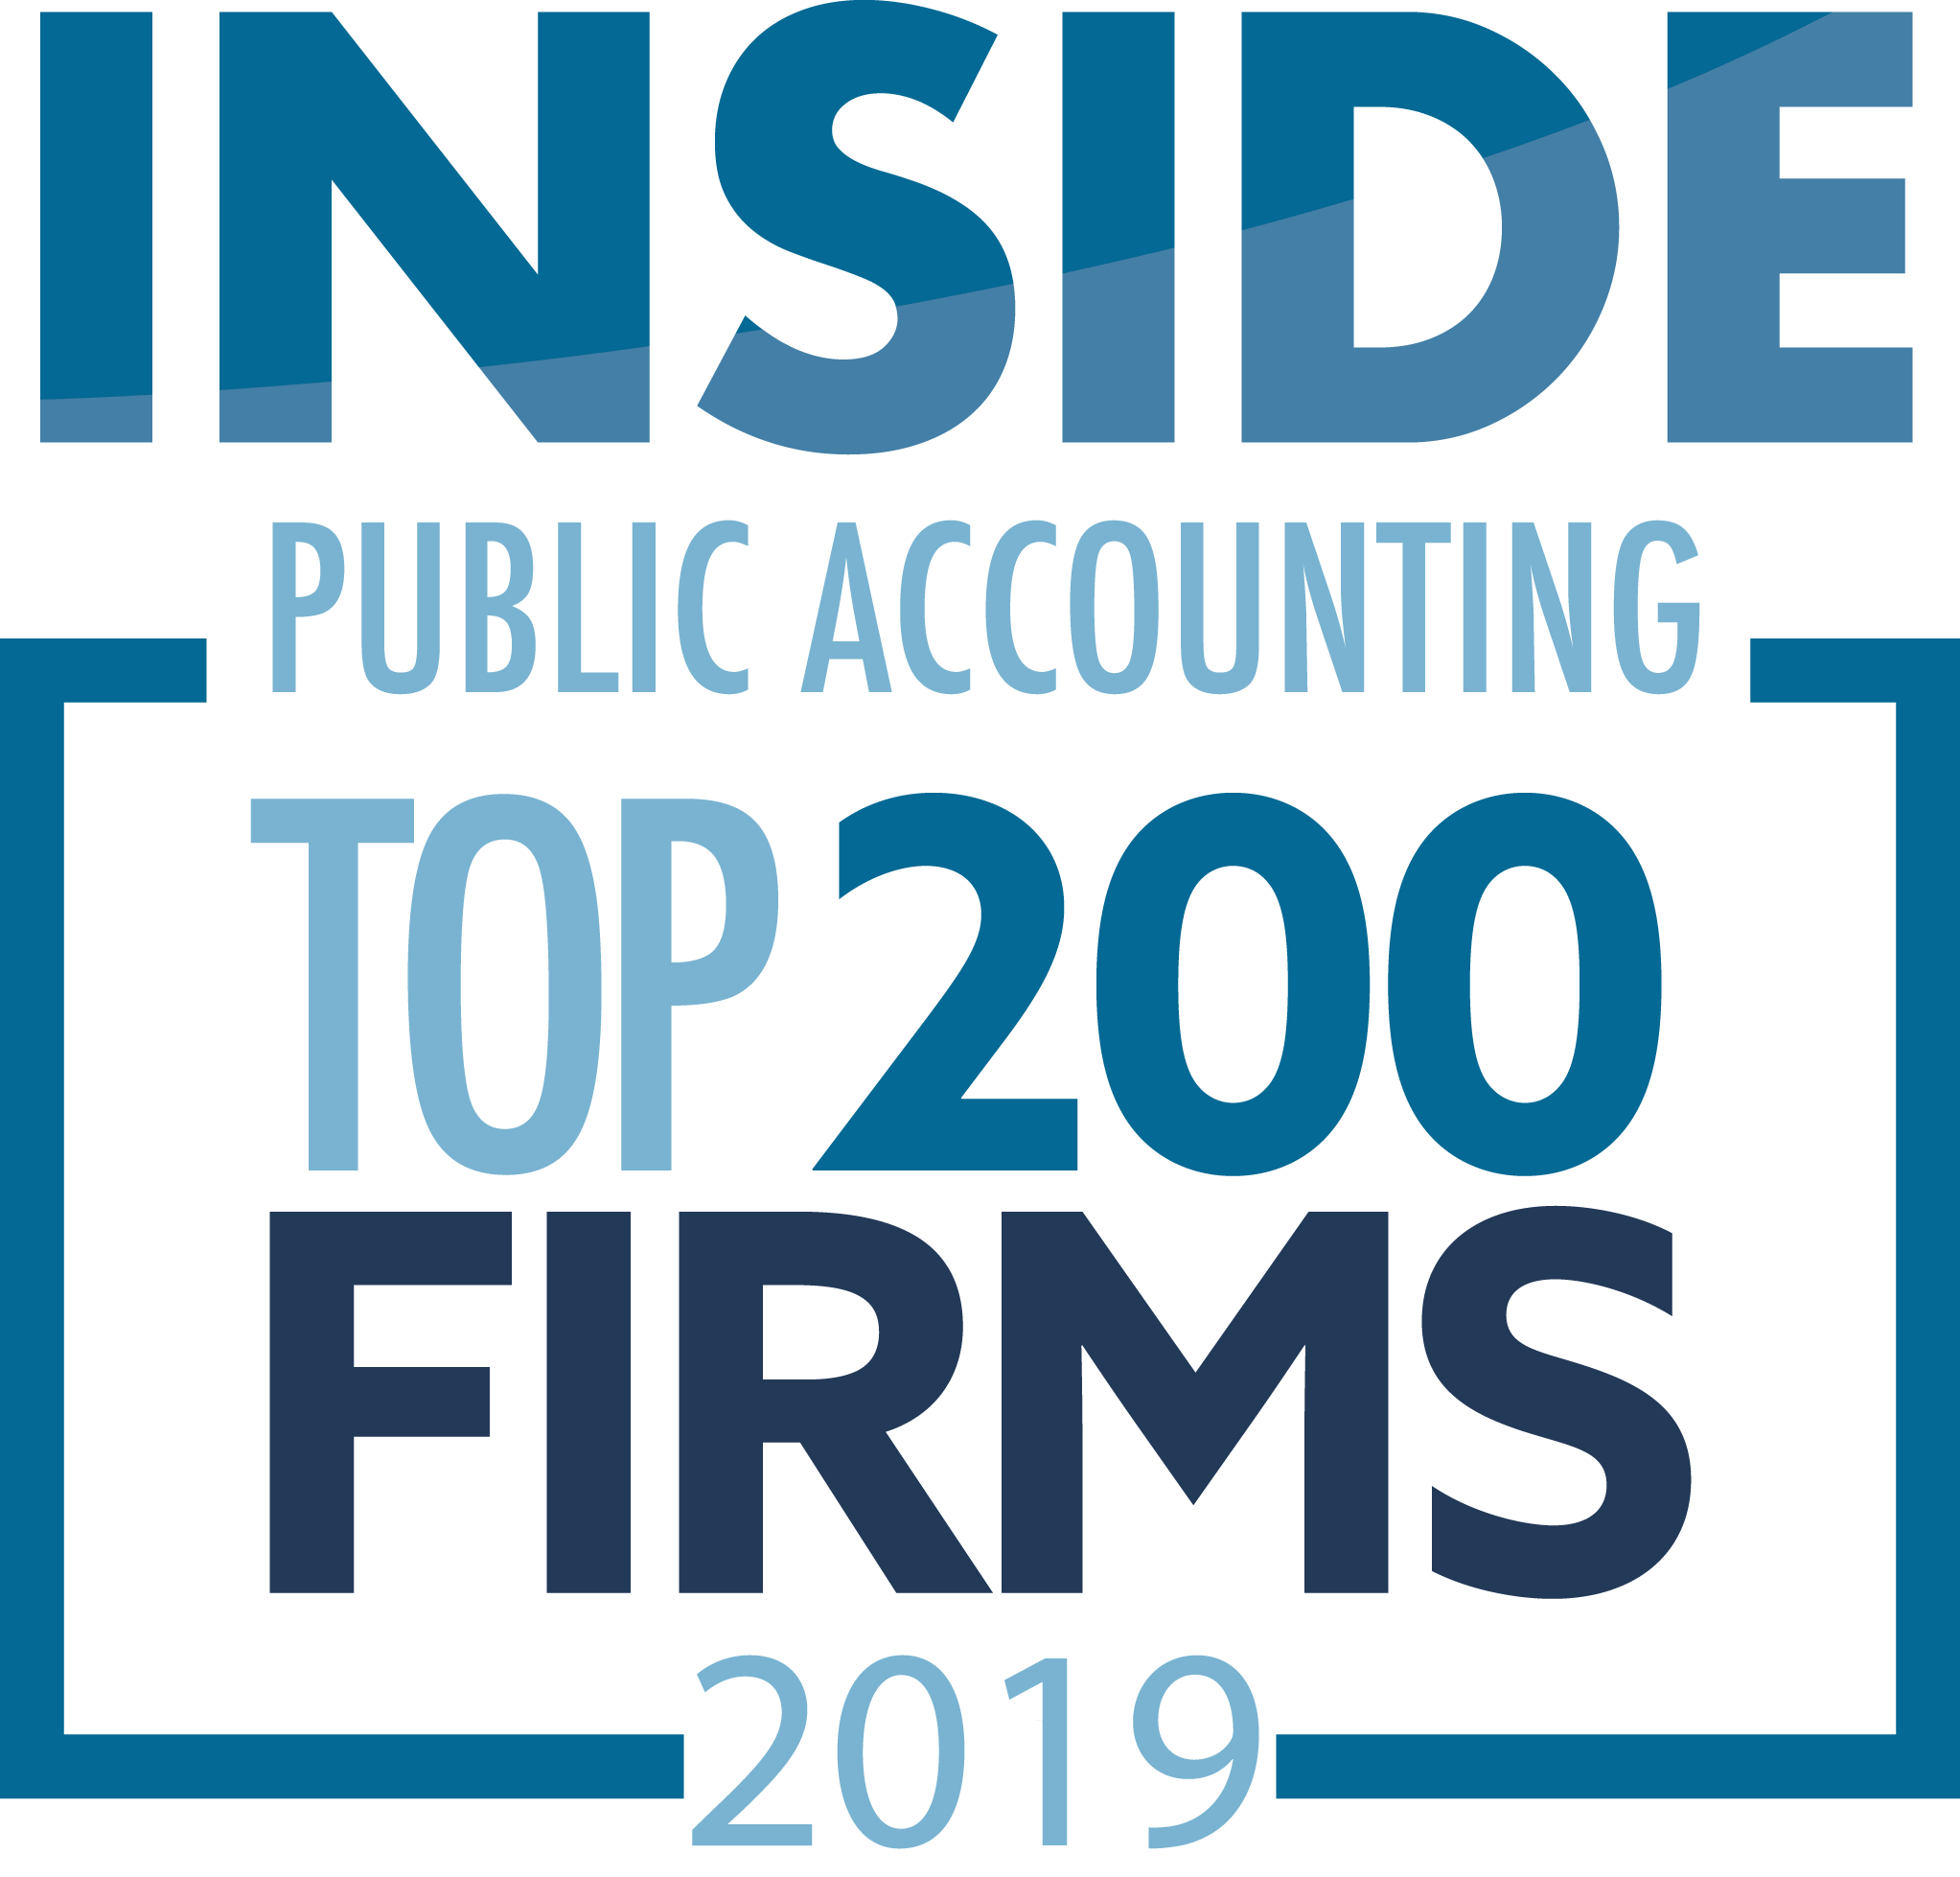 Award-2019 Top 200 Firms - Richey May was ranked #148 in 2019, up from #171 in 2018.